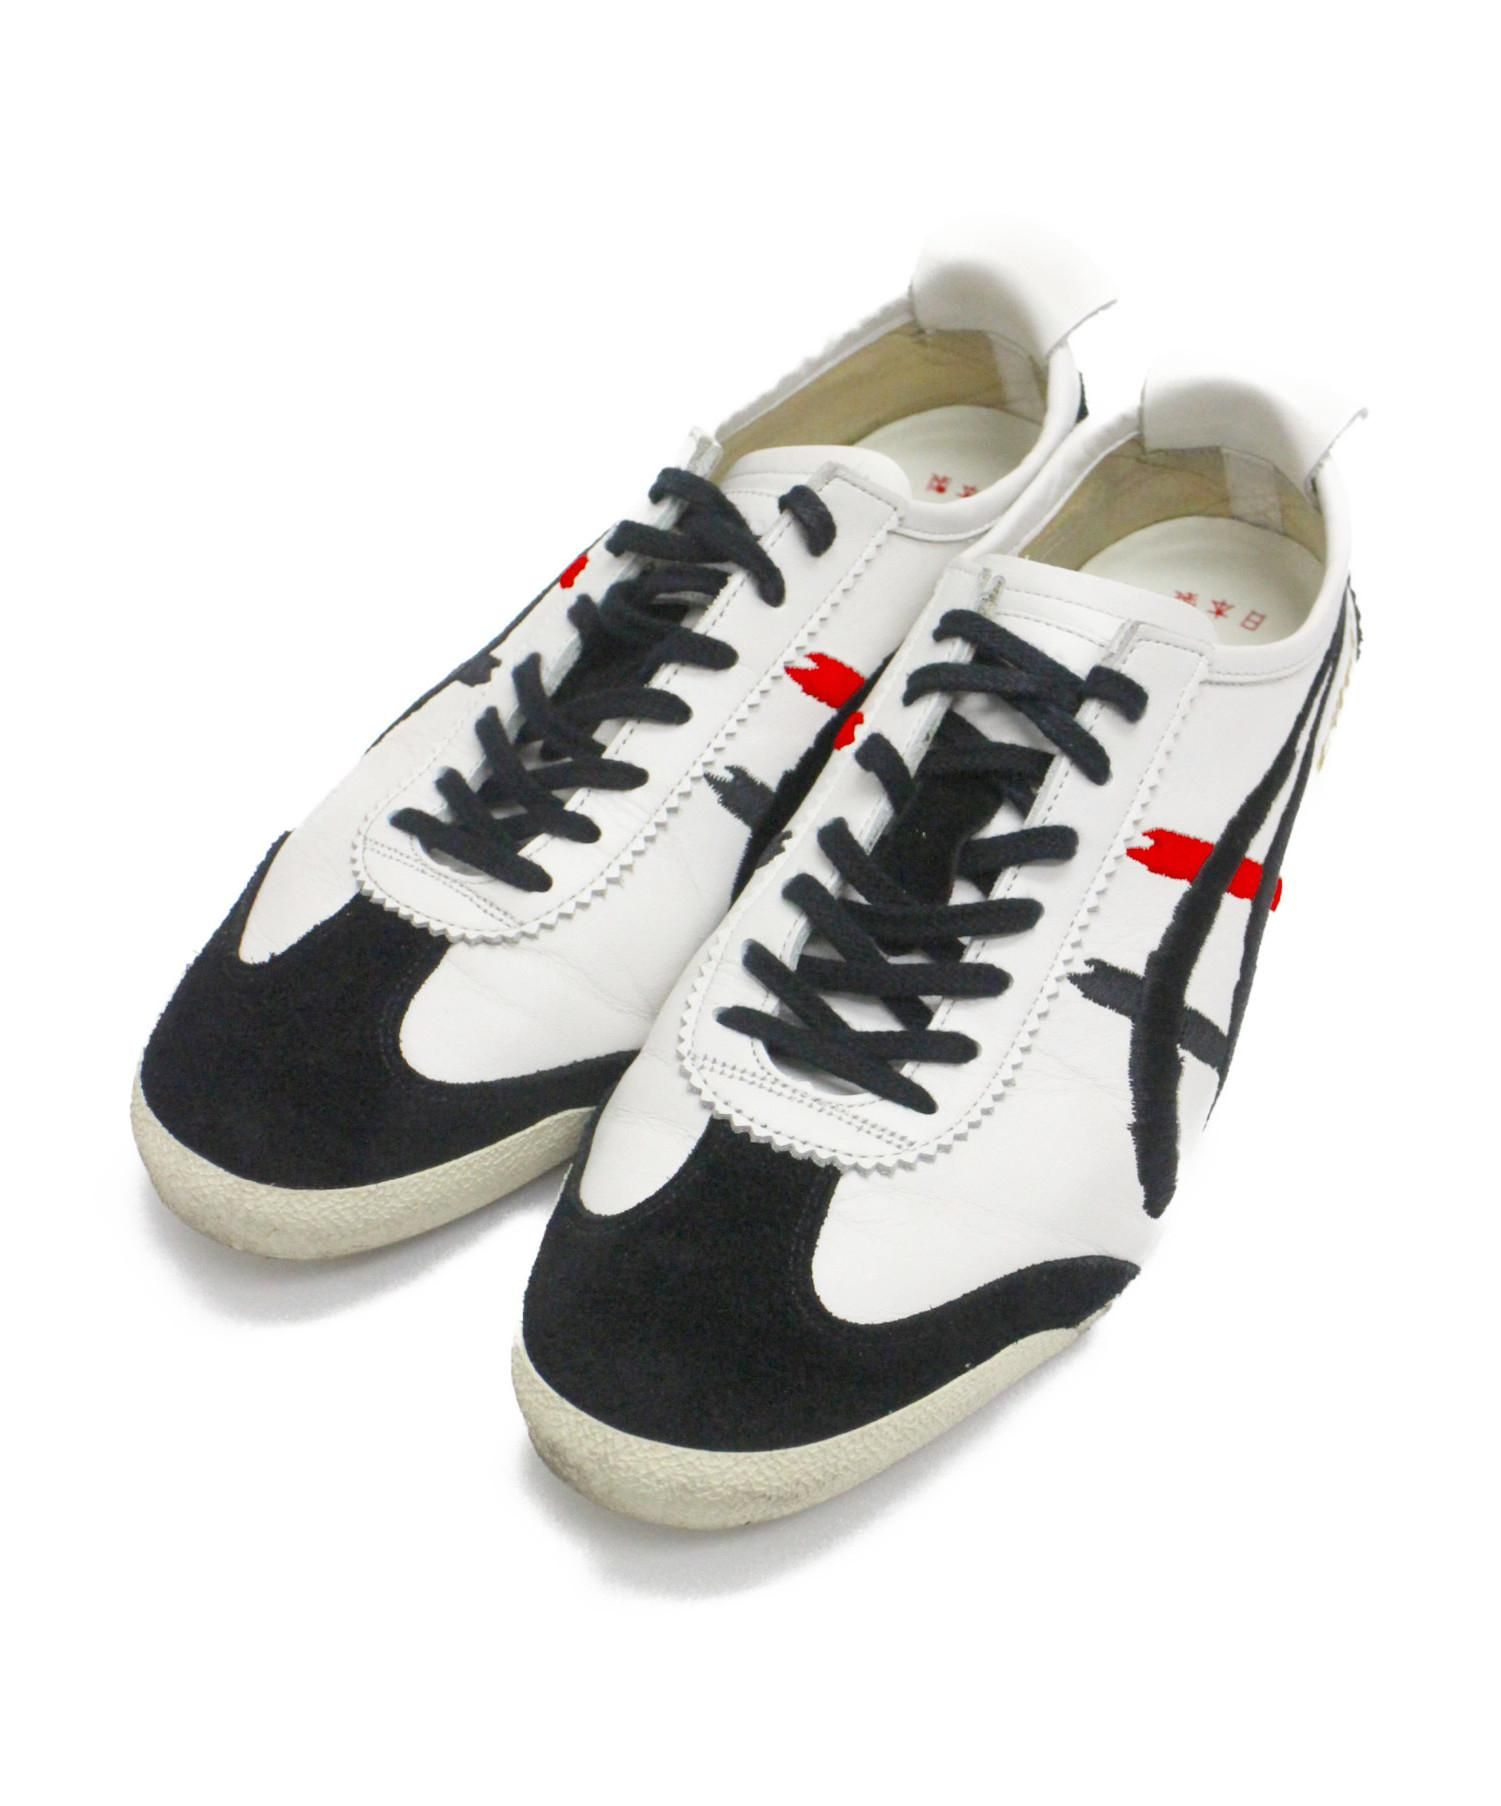 super cute 0a6b7 e1d62 [中古]onitsuka Tiger(オニツカタイガー)のメンズ シューズ MEXICO 66 DELUXE